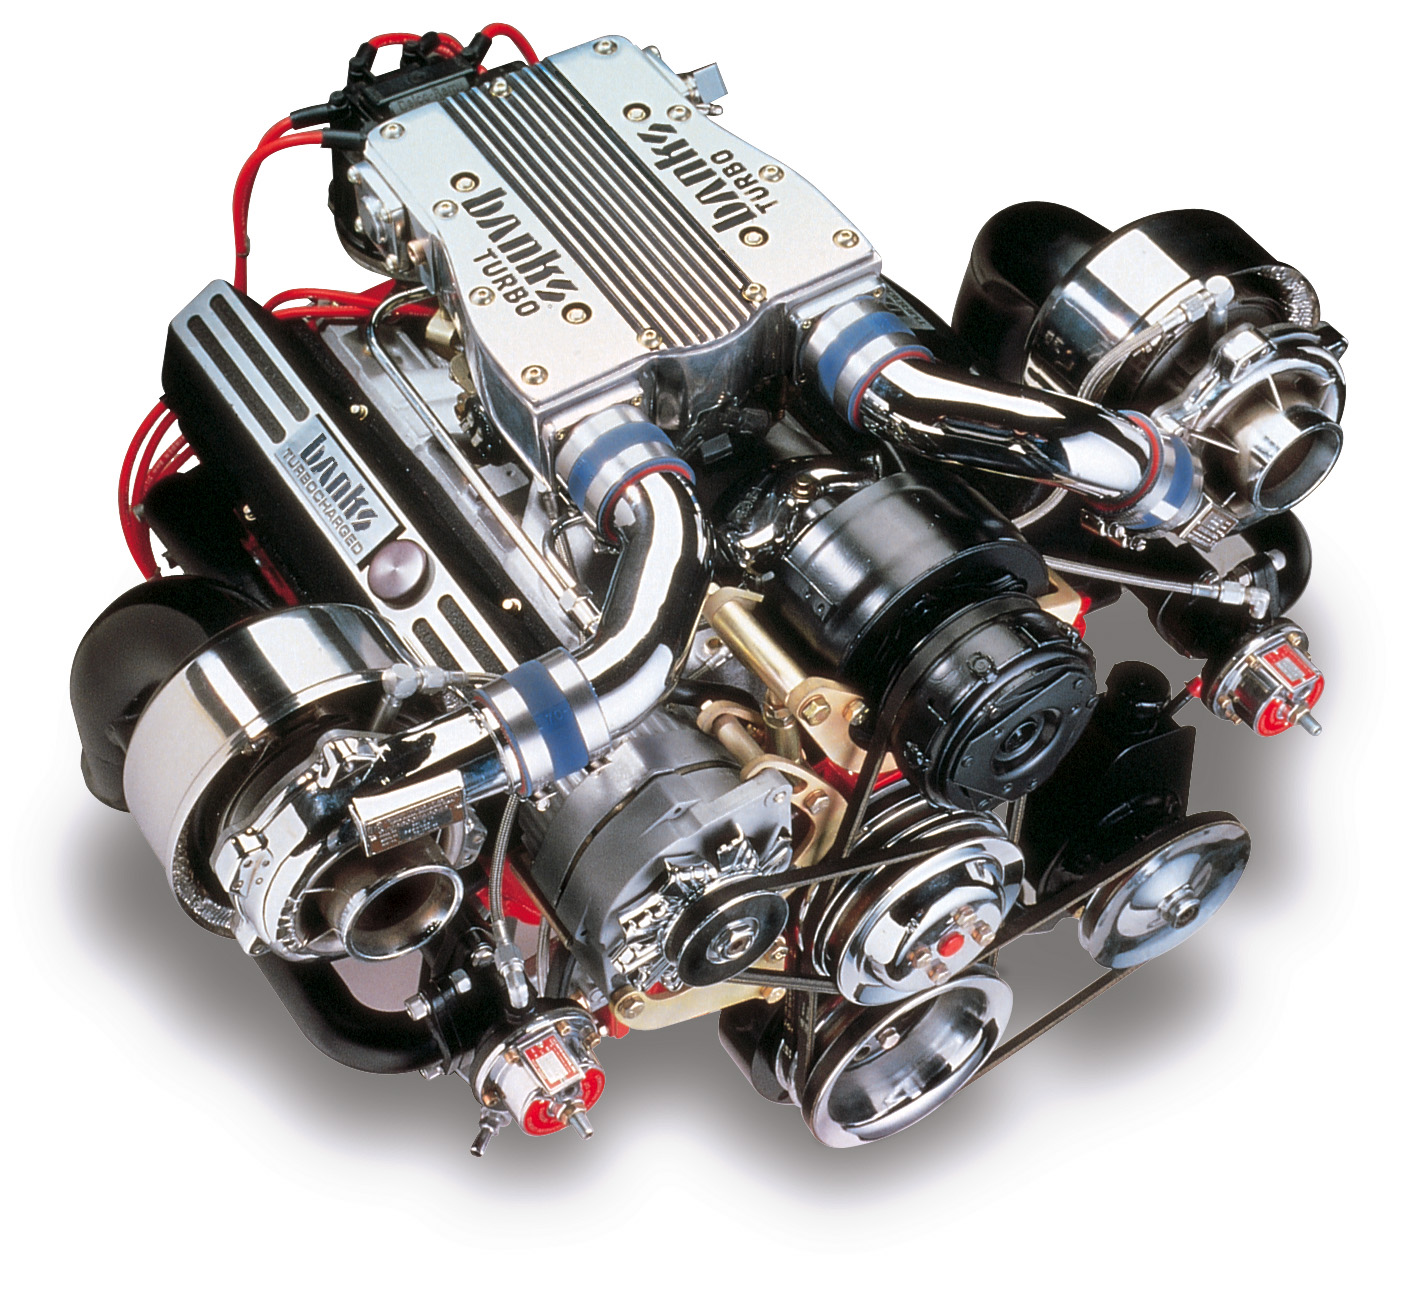 Twin Turbo V8 Facts Of Life Banks Power Mack Truck Engine Diagram Cylinder Head Tech Articles